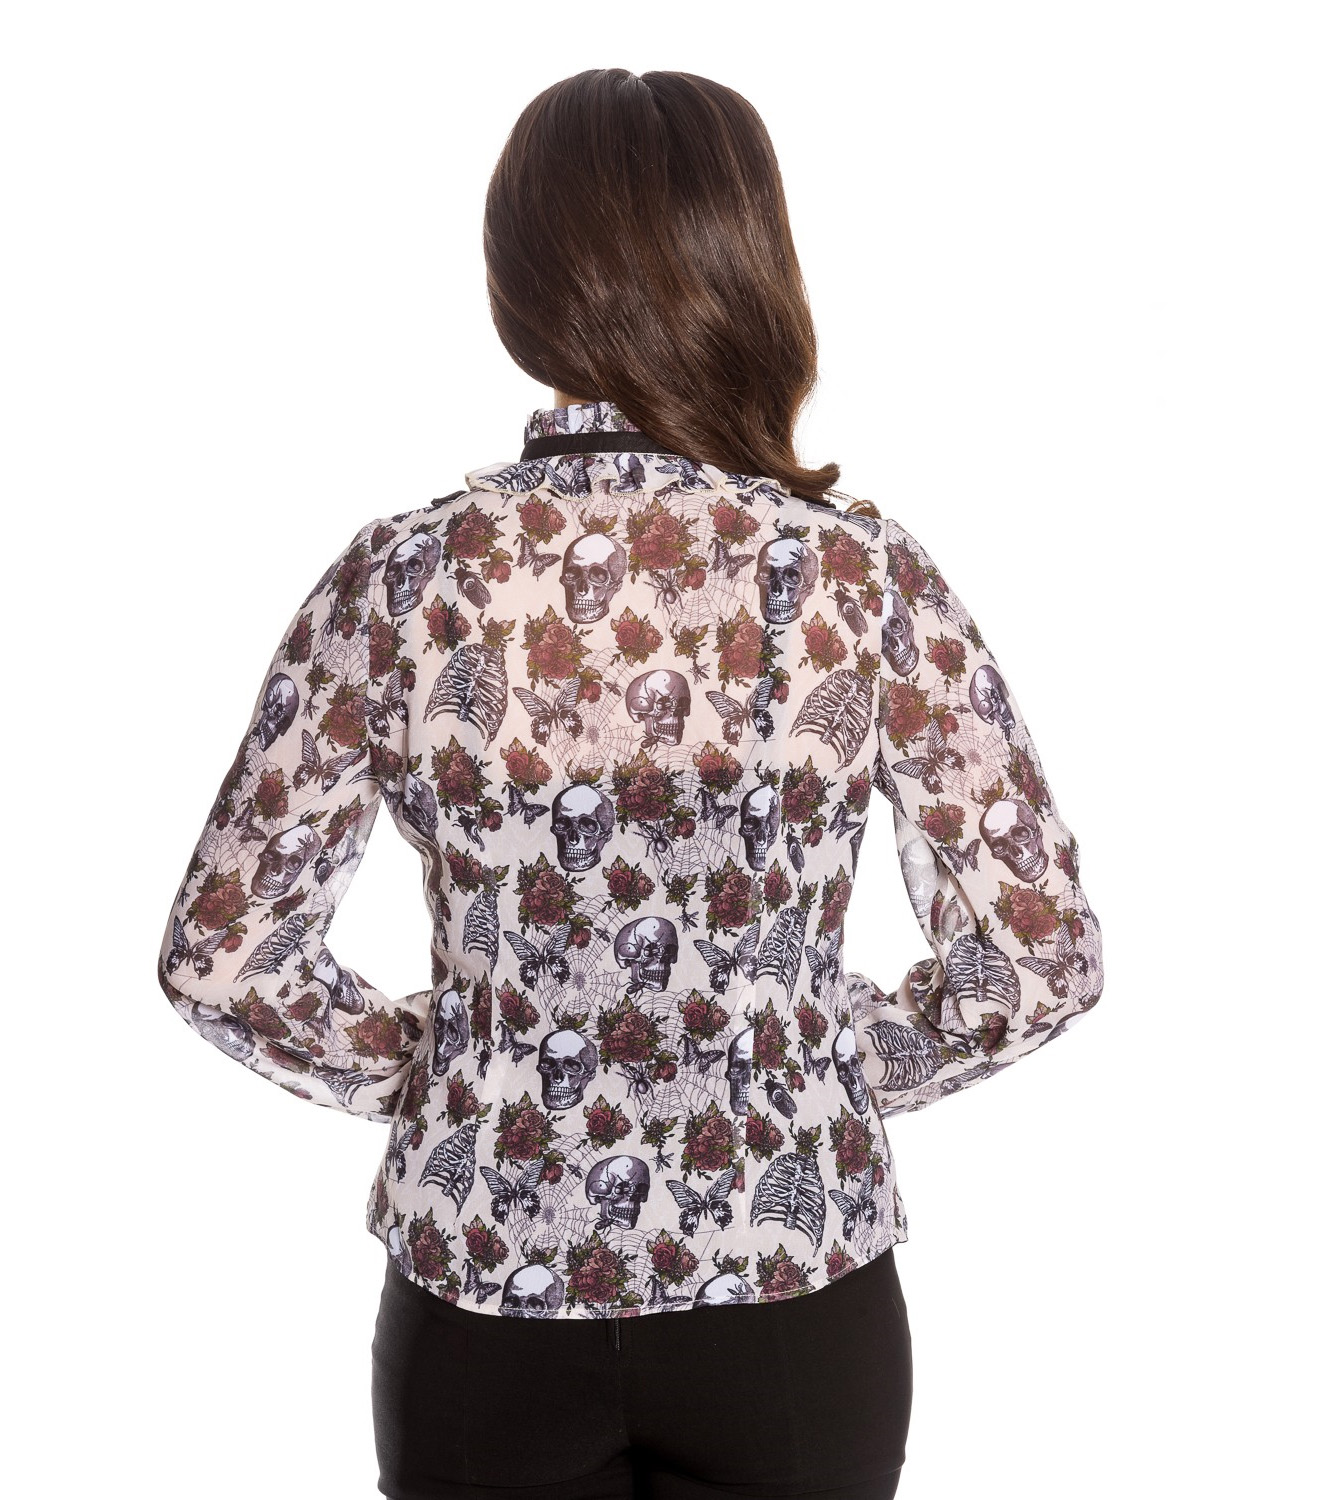 Hell-Bunny-Chiffon-Shirt-Top-Gothic-Skulls-Roses-GRISELDA-Blouse-Ivory-All-Sizes thumbnail 5